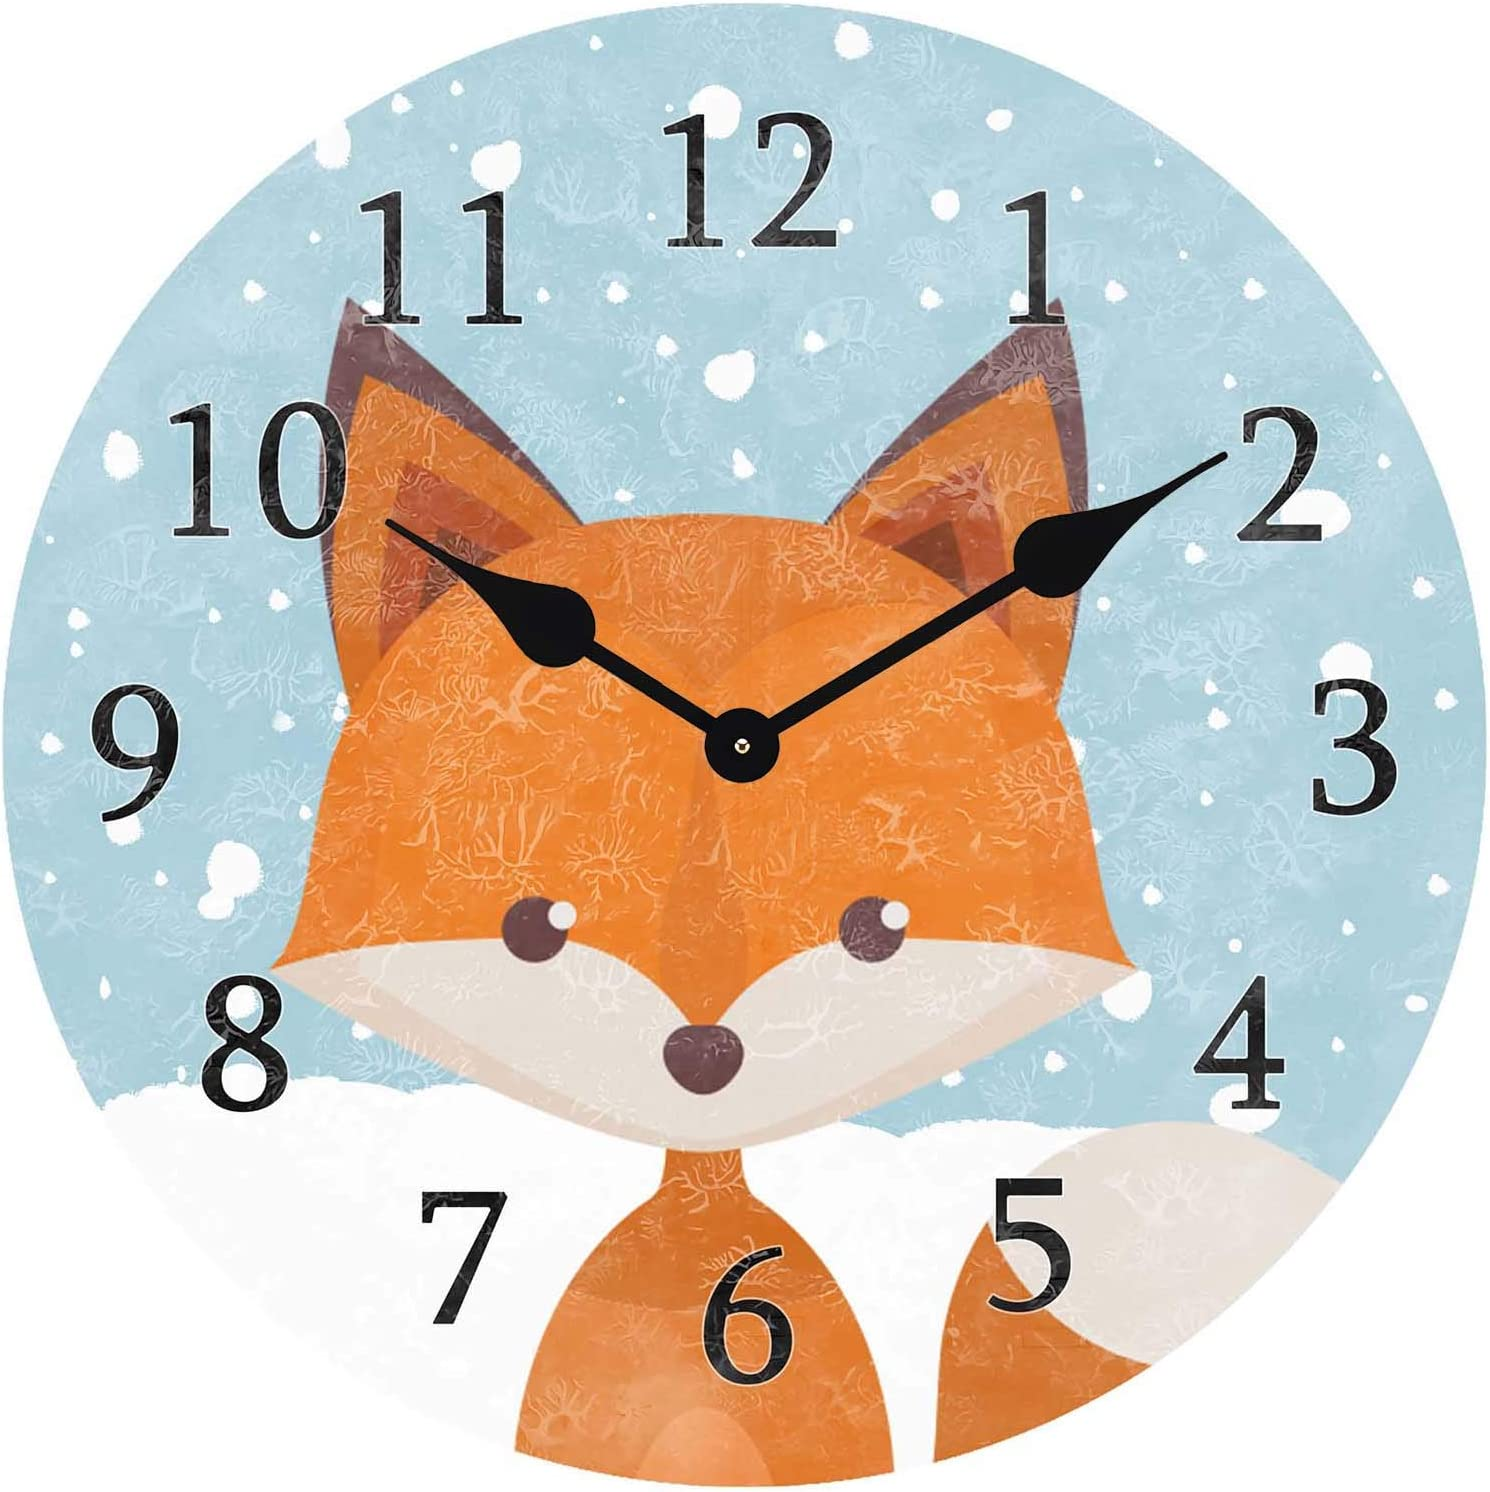 ATEDEANEI Silent Decorative Non-Ticking Wall Clock Snow Fox Wooden 10 Inch Wall Decor Battery Operated for Bedroom Living Room Kitchen Frameless